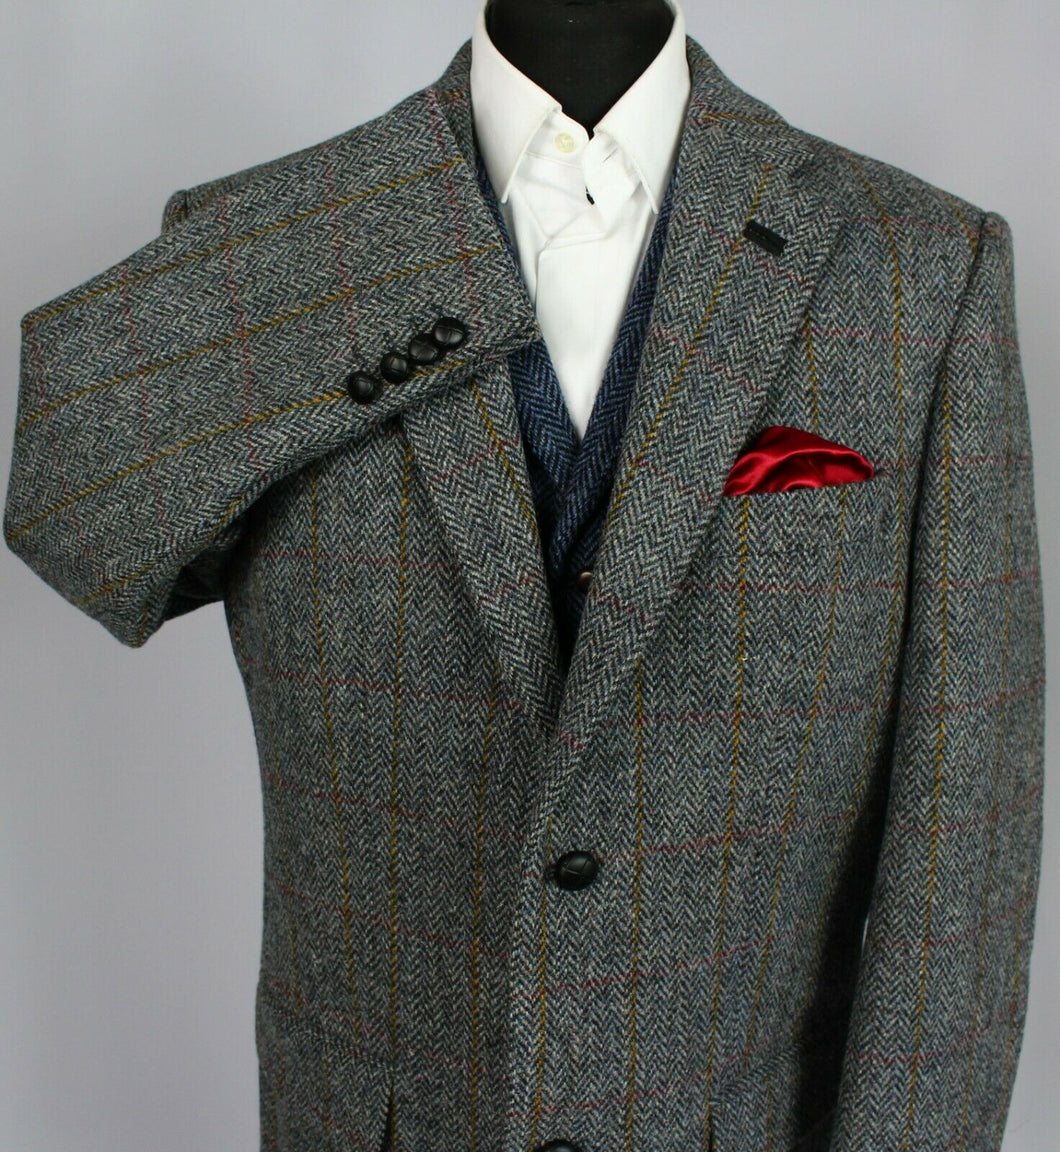 Harris Tweed Blazer Jacket Grey 48L WALBUSCH COLLECTORS TWEED 3390